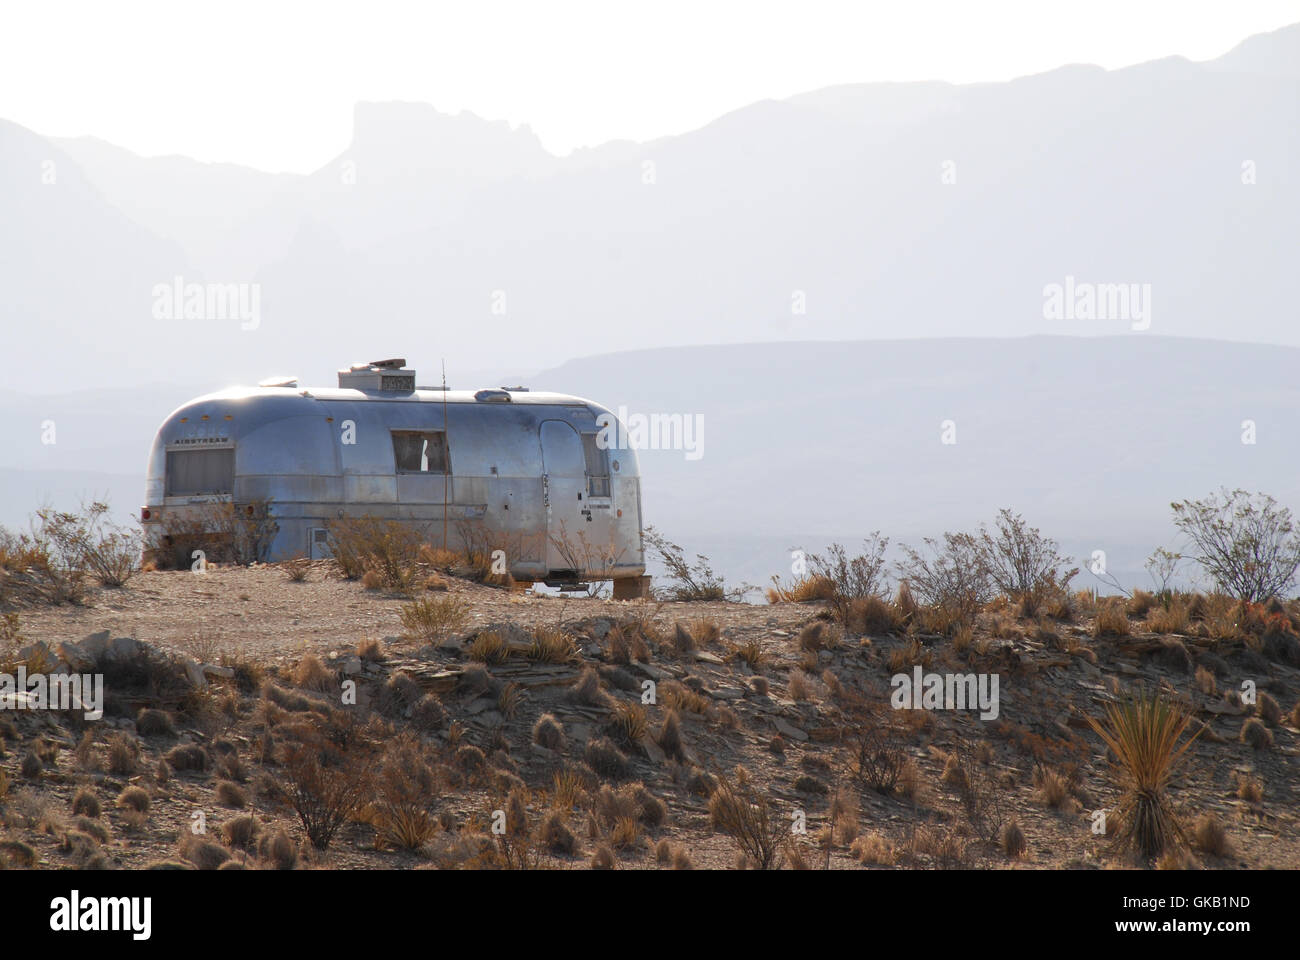 airstream - Stock Image